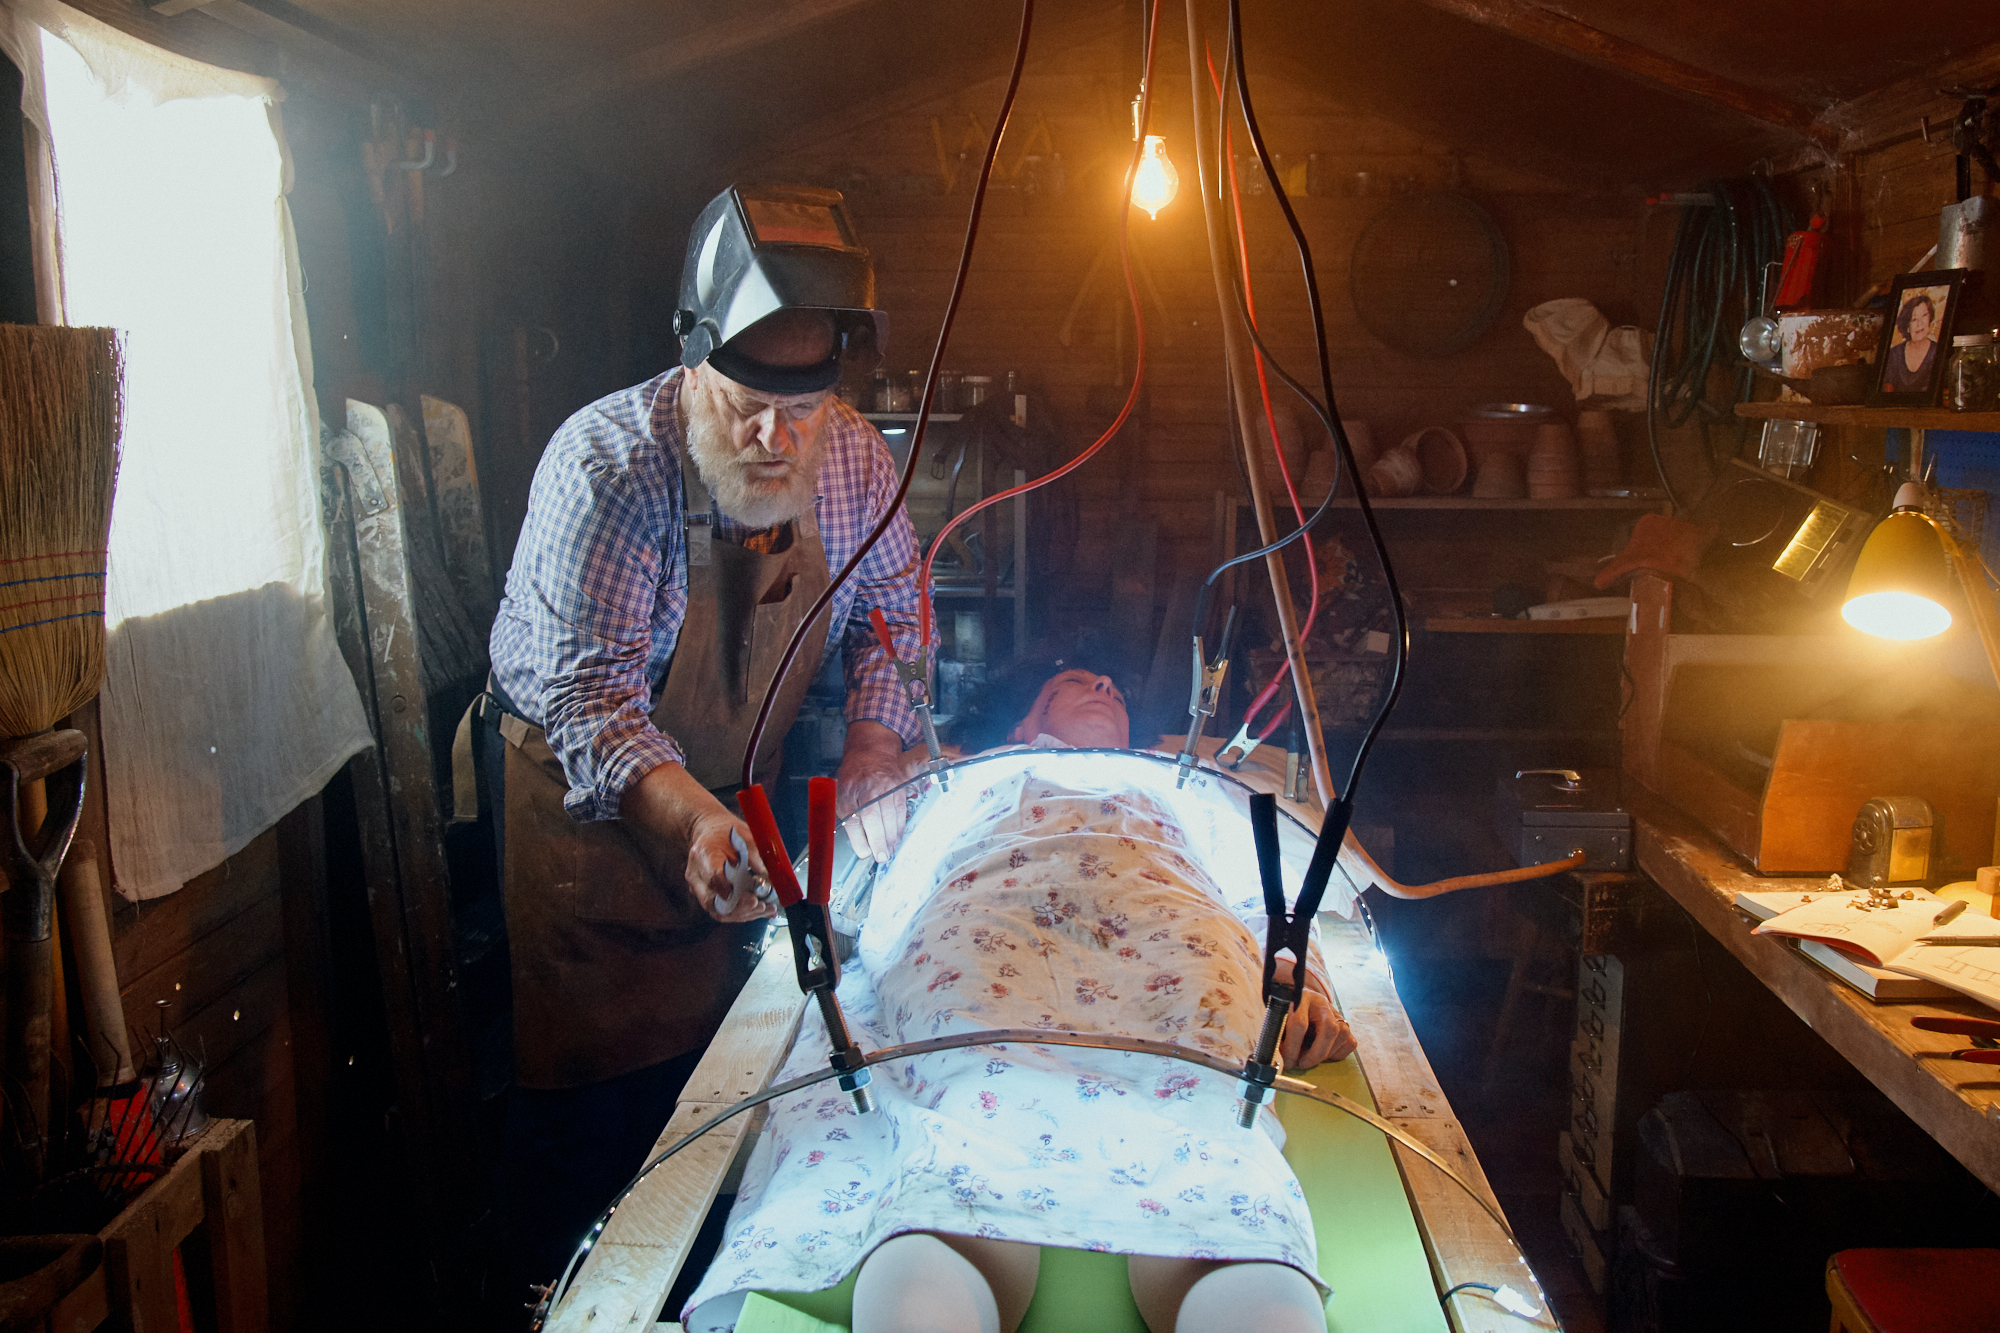 Frank works on bringing Mary back to life. A behind-the-scenes photo from the set of  Frank & Mary . Photo by @Suzi_Corker